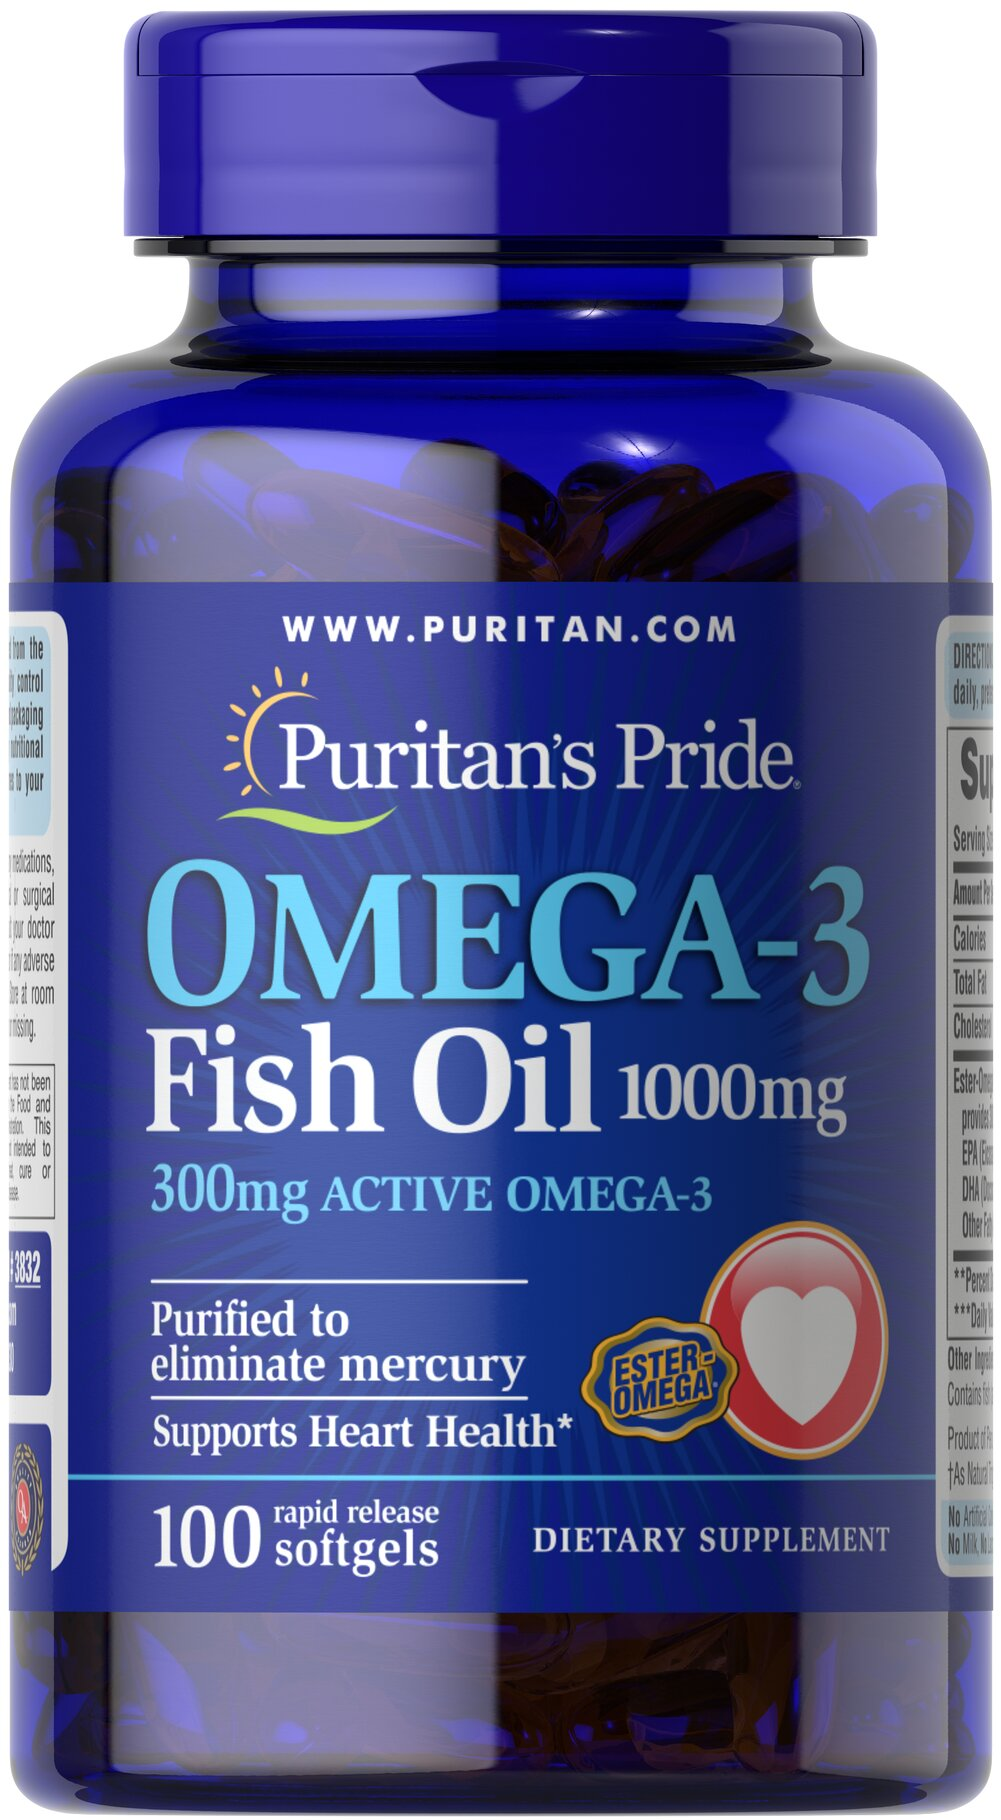 Omega 3 fish oil 1000 mg 300 mg active omega 3 100 for Fish oil uses